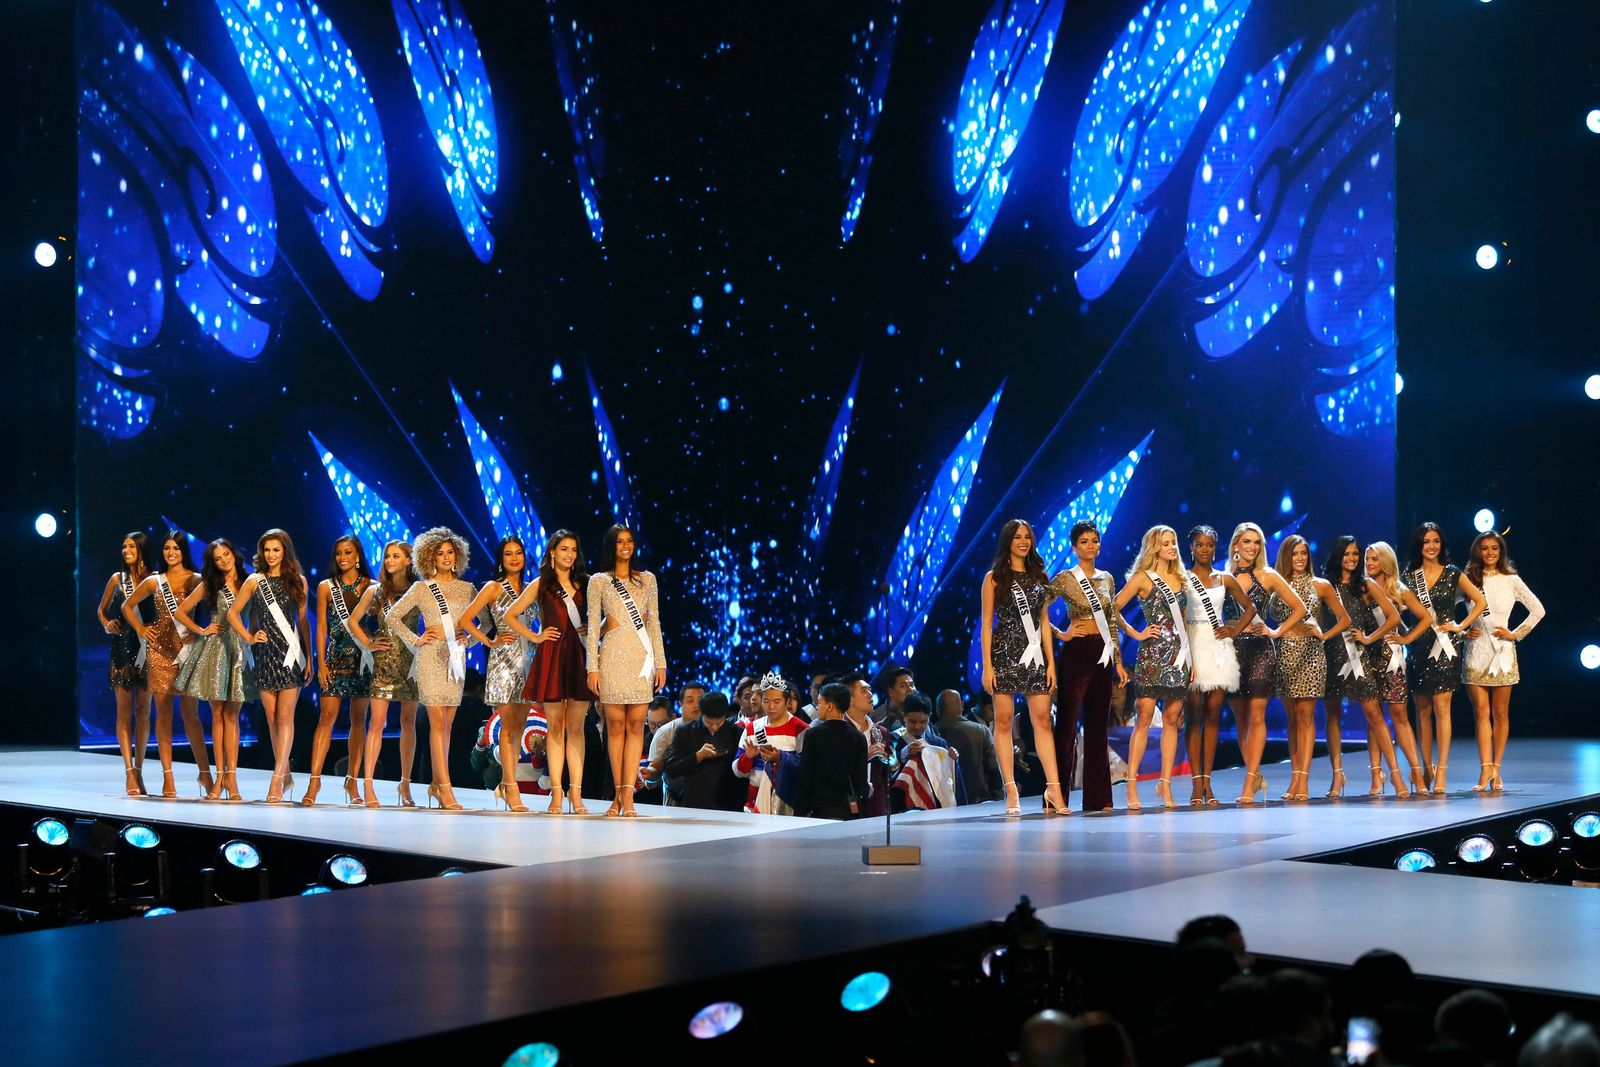 Finalists stand on stage during the final of 67th Miss Universe competition in Bangkok, Thailand, Monday, Dec. 17, 2018.(AP Photo/Gemunu Amarasinghe)